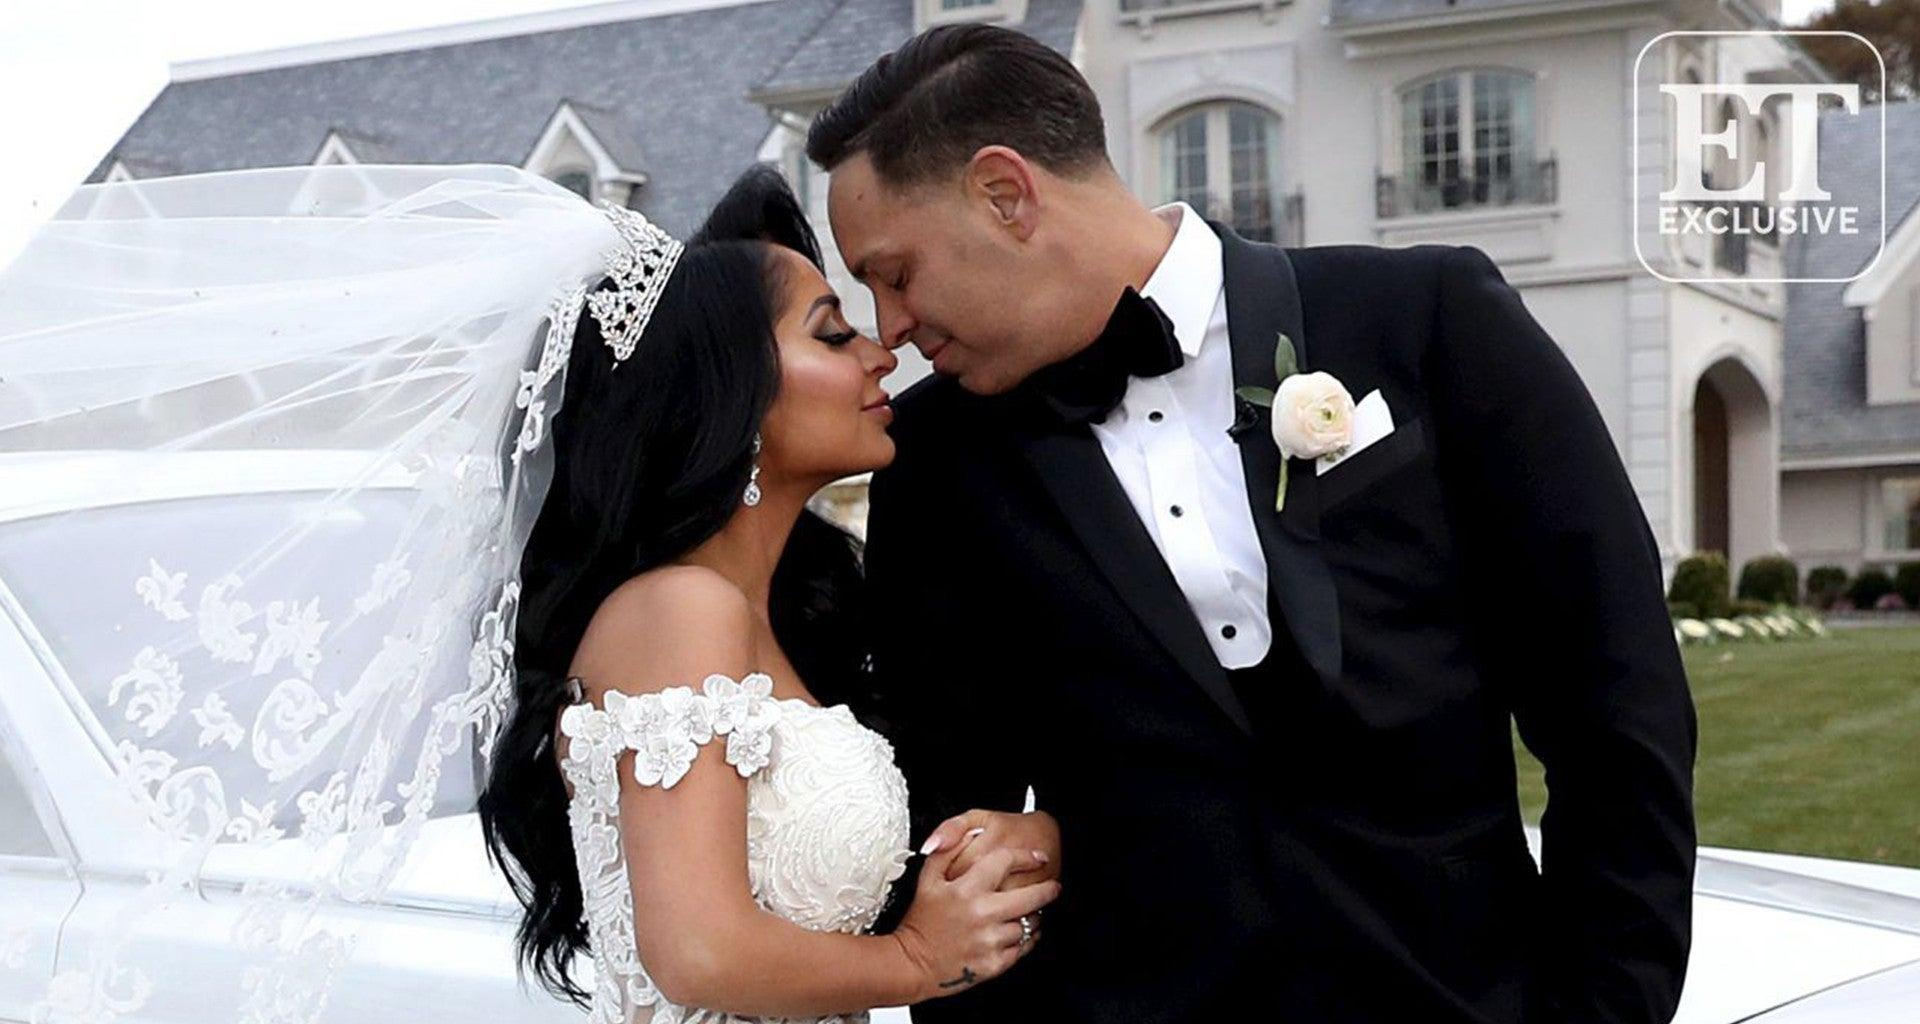 Angelina Pivarnick Gets Married: Yells At Jersey Shore Producers, Storms Out, And Is No Longer Talking To Female Castmates Who Were Booed At The Wedding